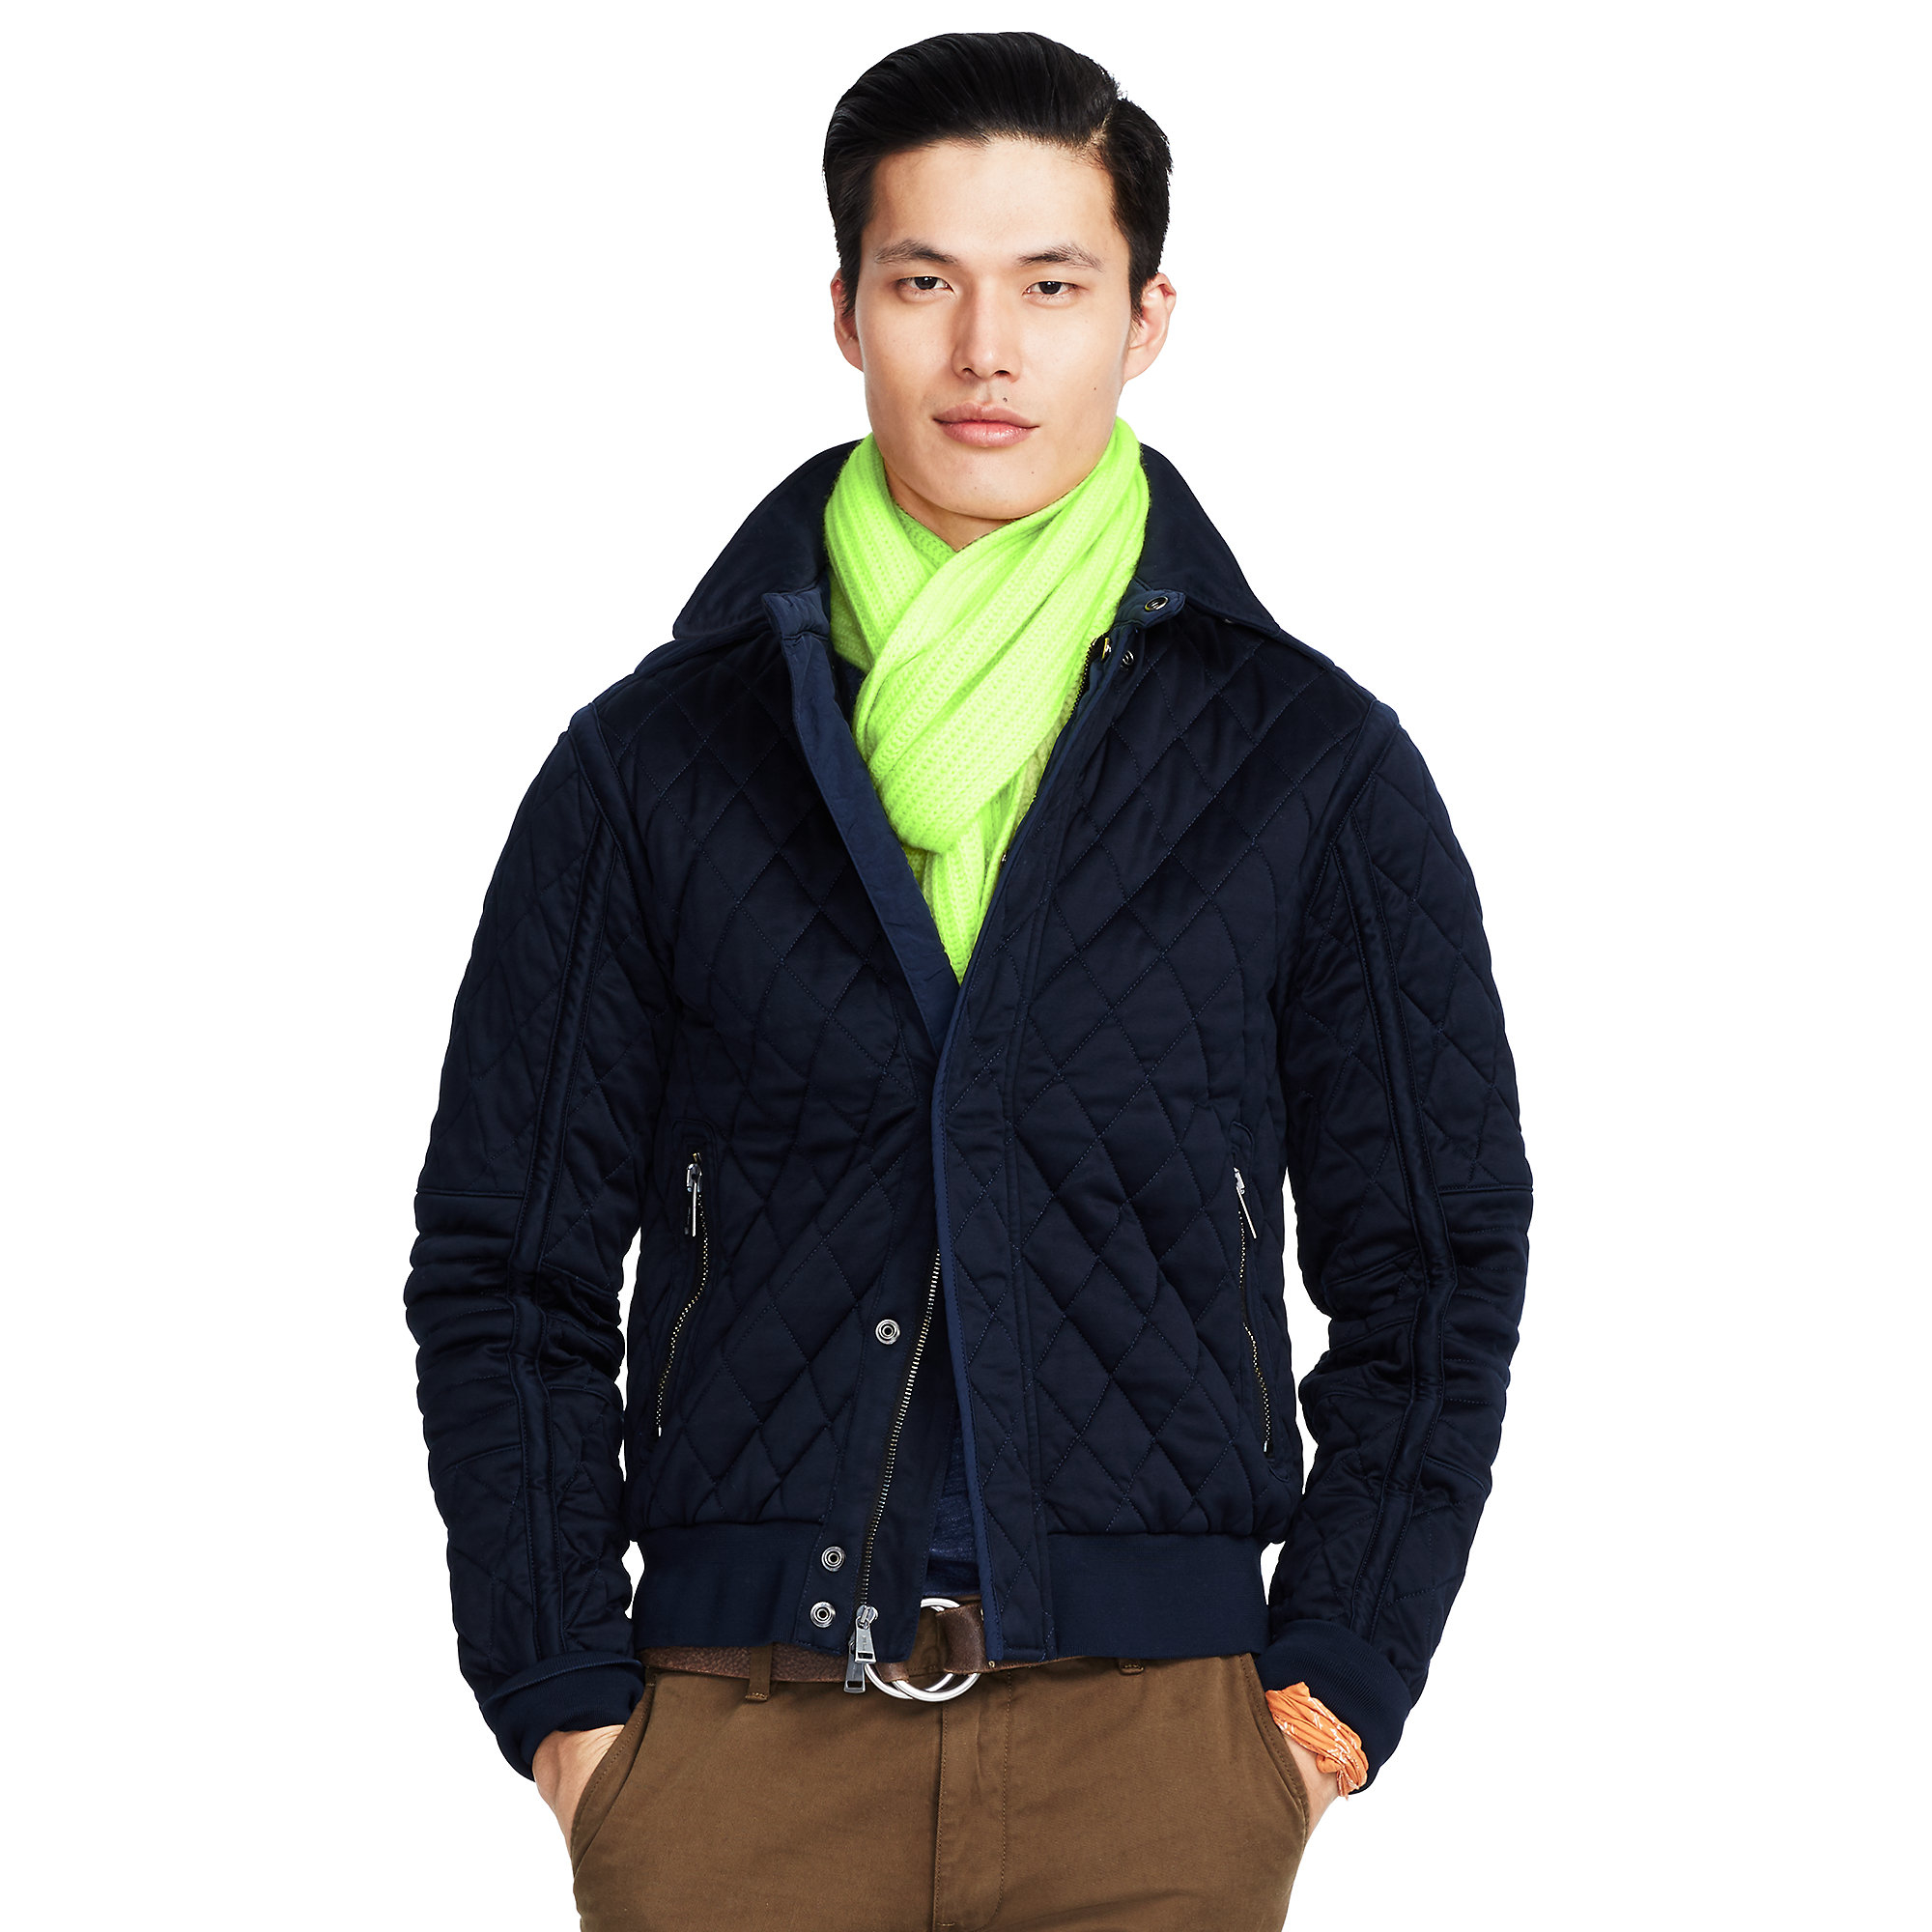 polo ralph lauren quilted cotton jacket in blue for men lyst. Black Bedroom Furniture Sets. Home Design Ideas